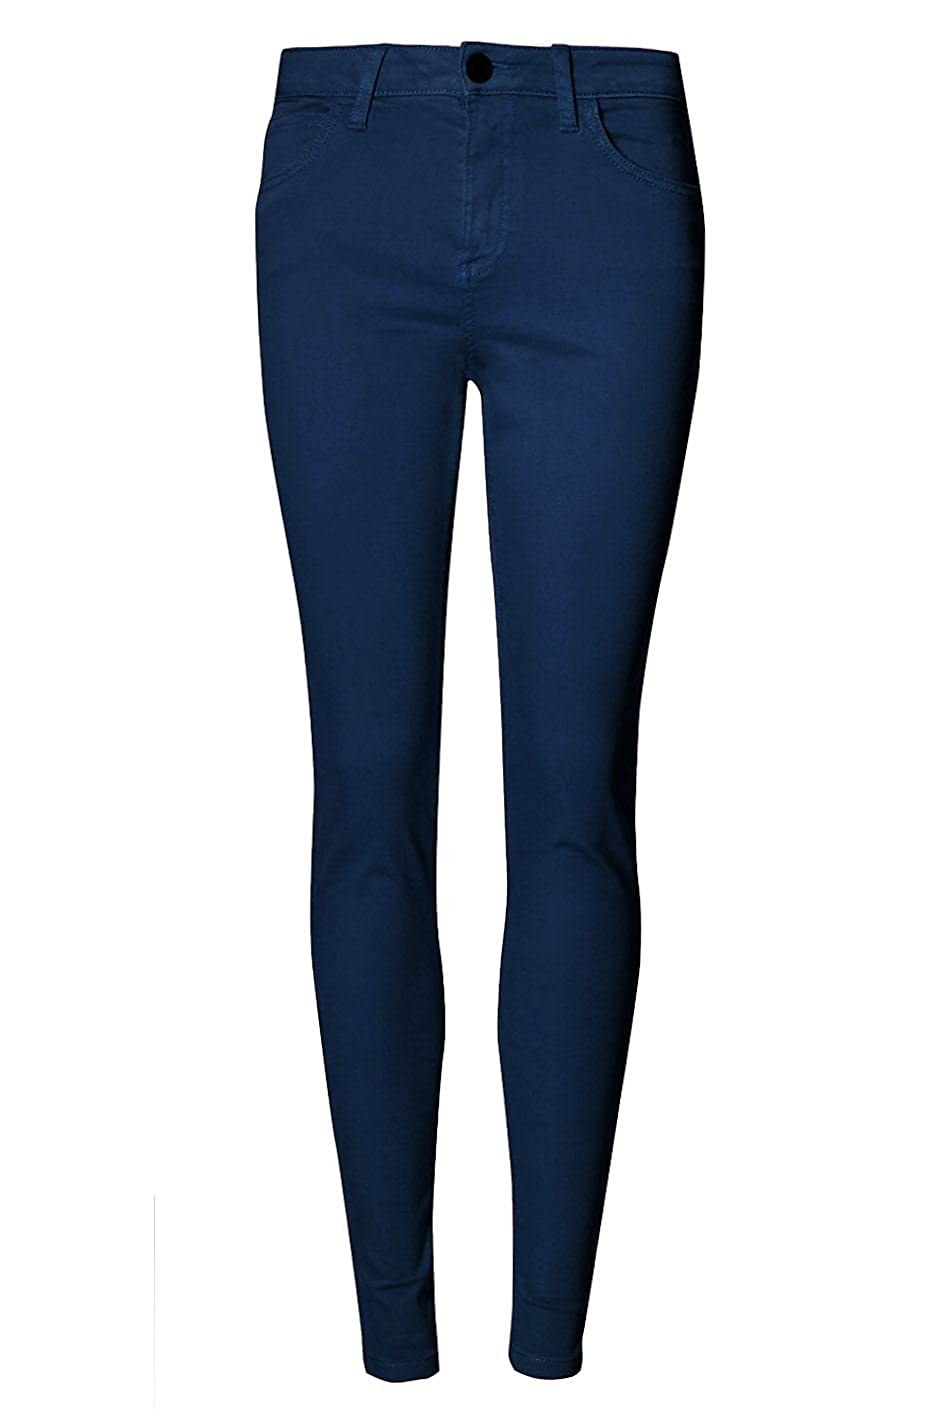 Marks and Spencer M/&S Collection 5 Pocket Jeggings Stretch Cotton Ladies Ex